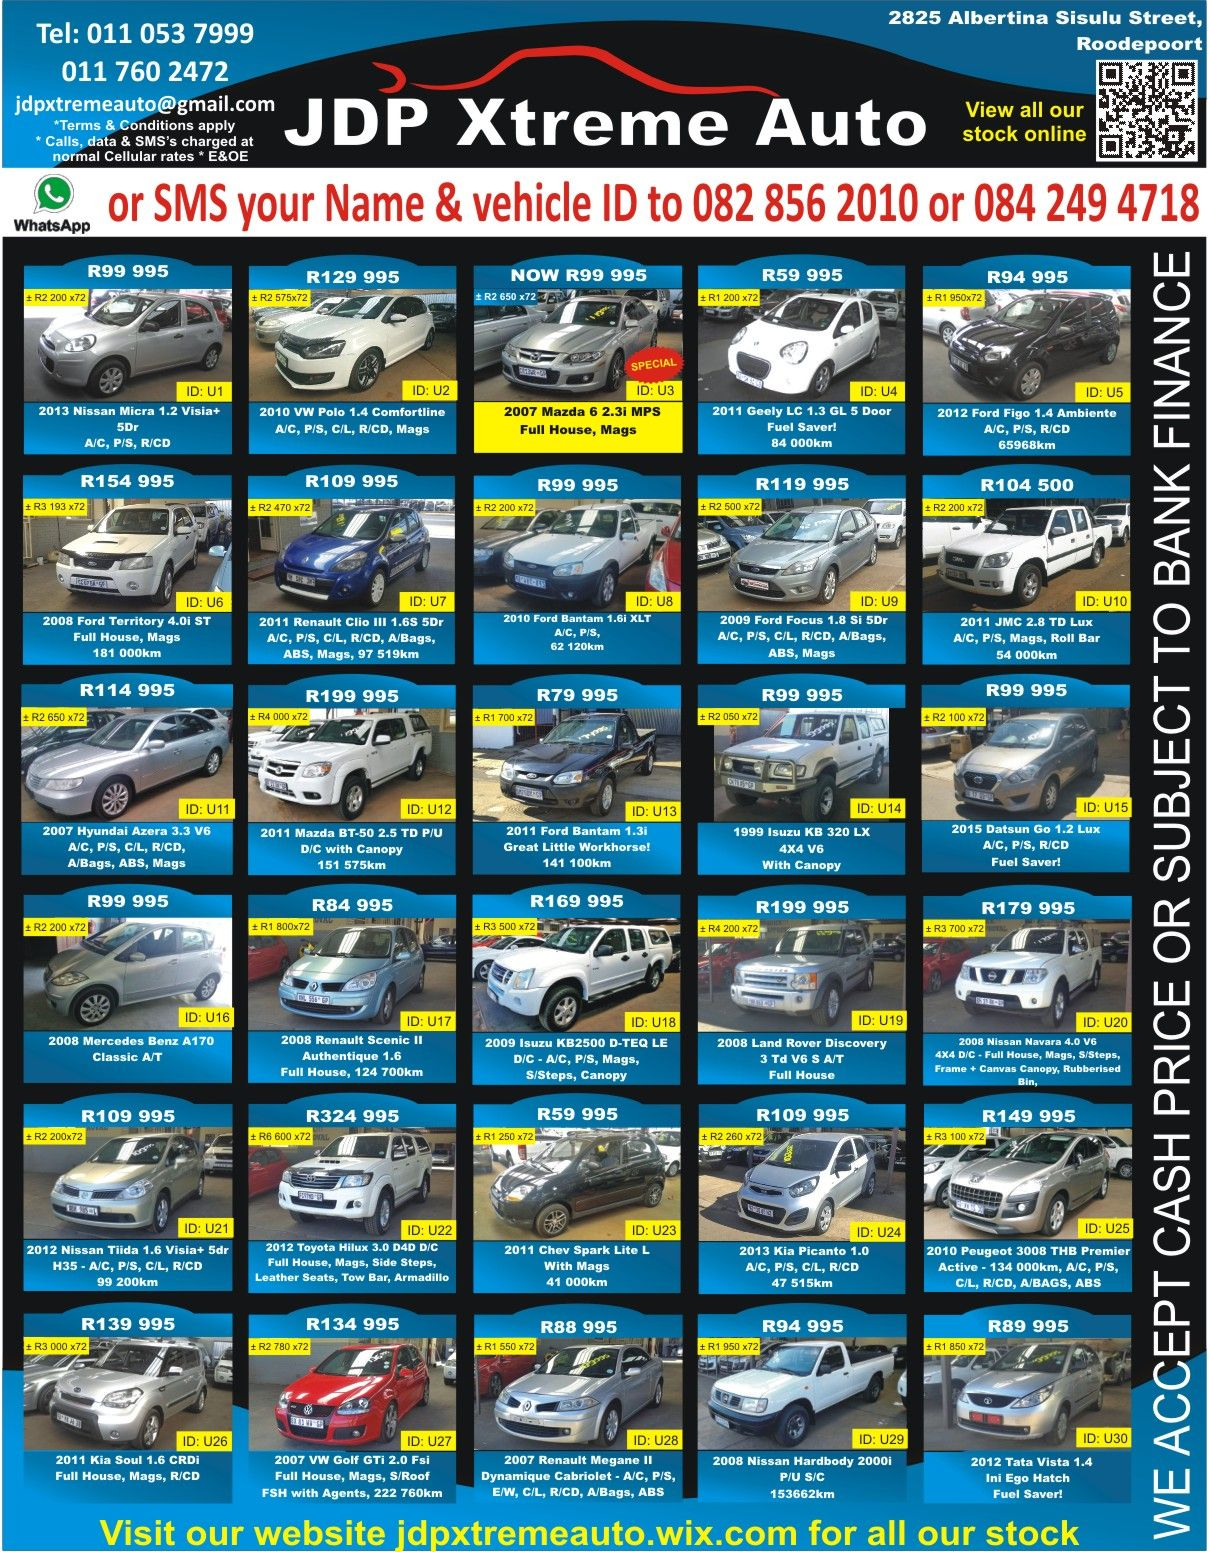 D Looking For Something Xtreme Well We Have Just The Car For You Dont Miss Out Jdp Xtreme Auto Call Us Now For More Inf Roodepoort Auto How To Apply